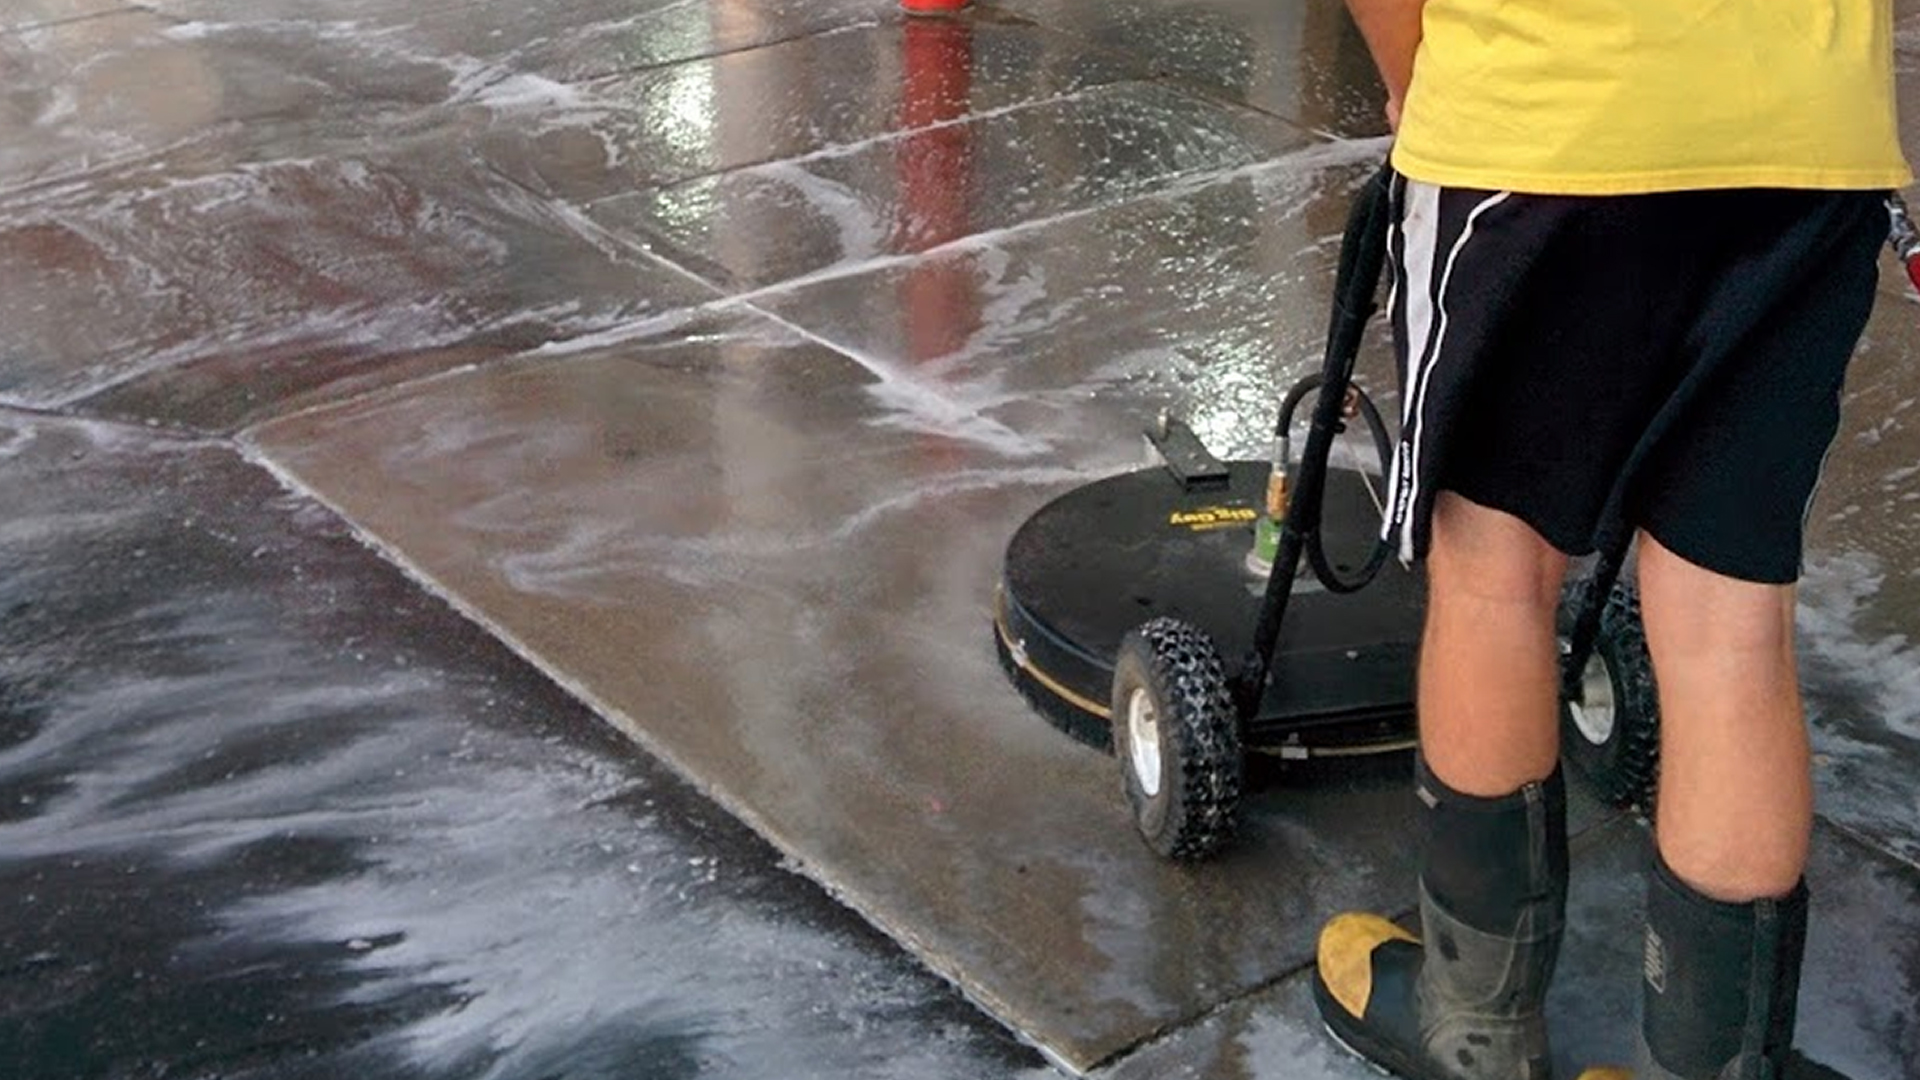 Gta gum removal for Concrete cleaning service